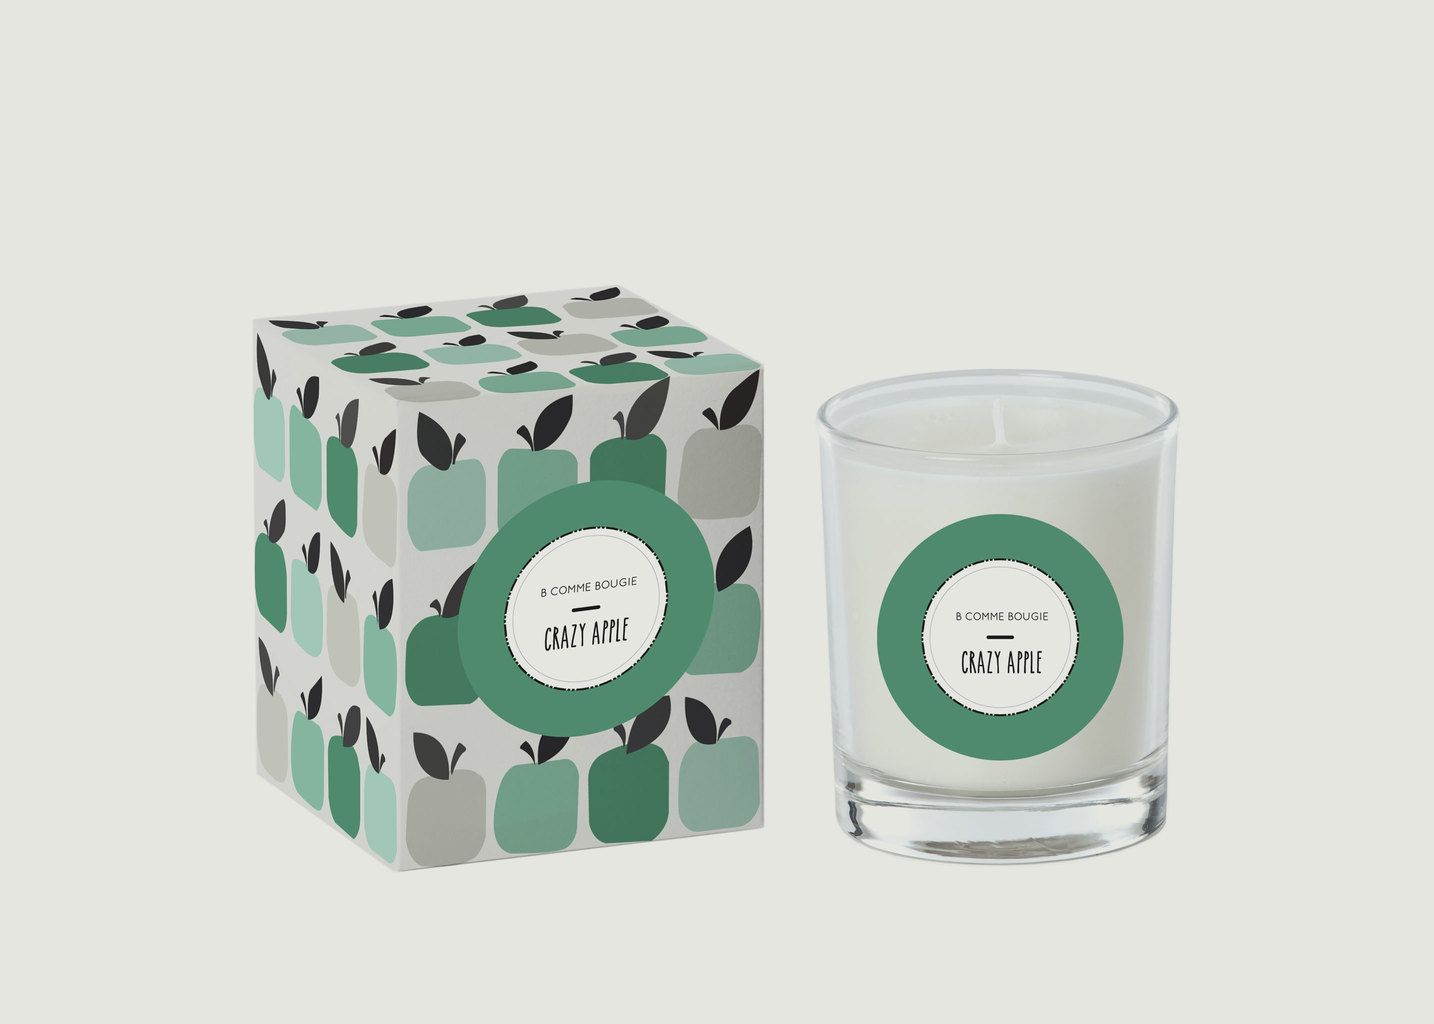 Bougie Crazy Apple - B comme Bougie